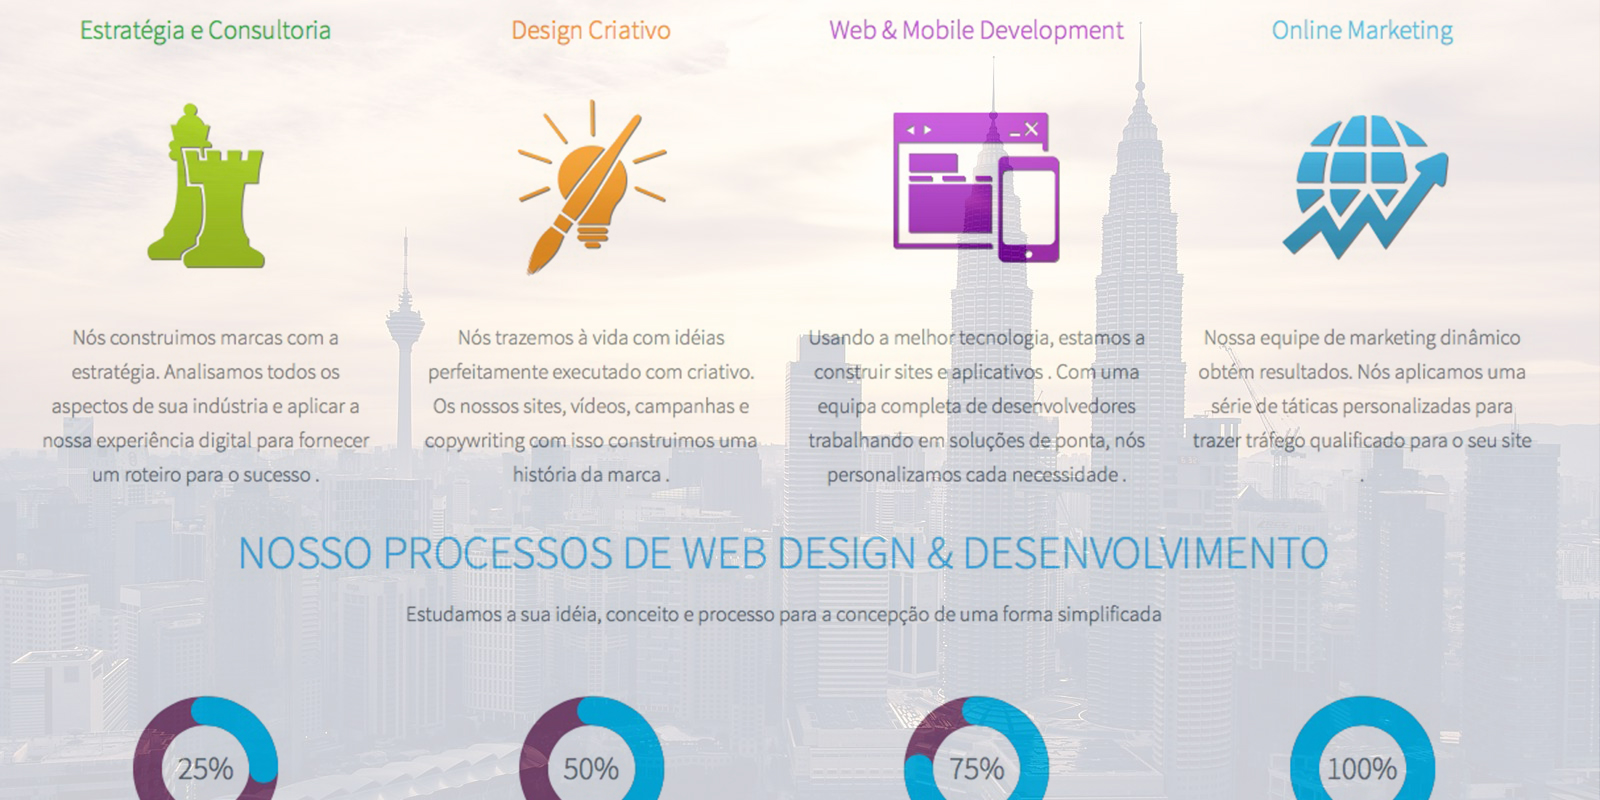 Website Design, Online Marketing, & Mobile App Development